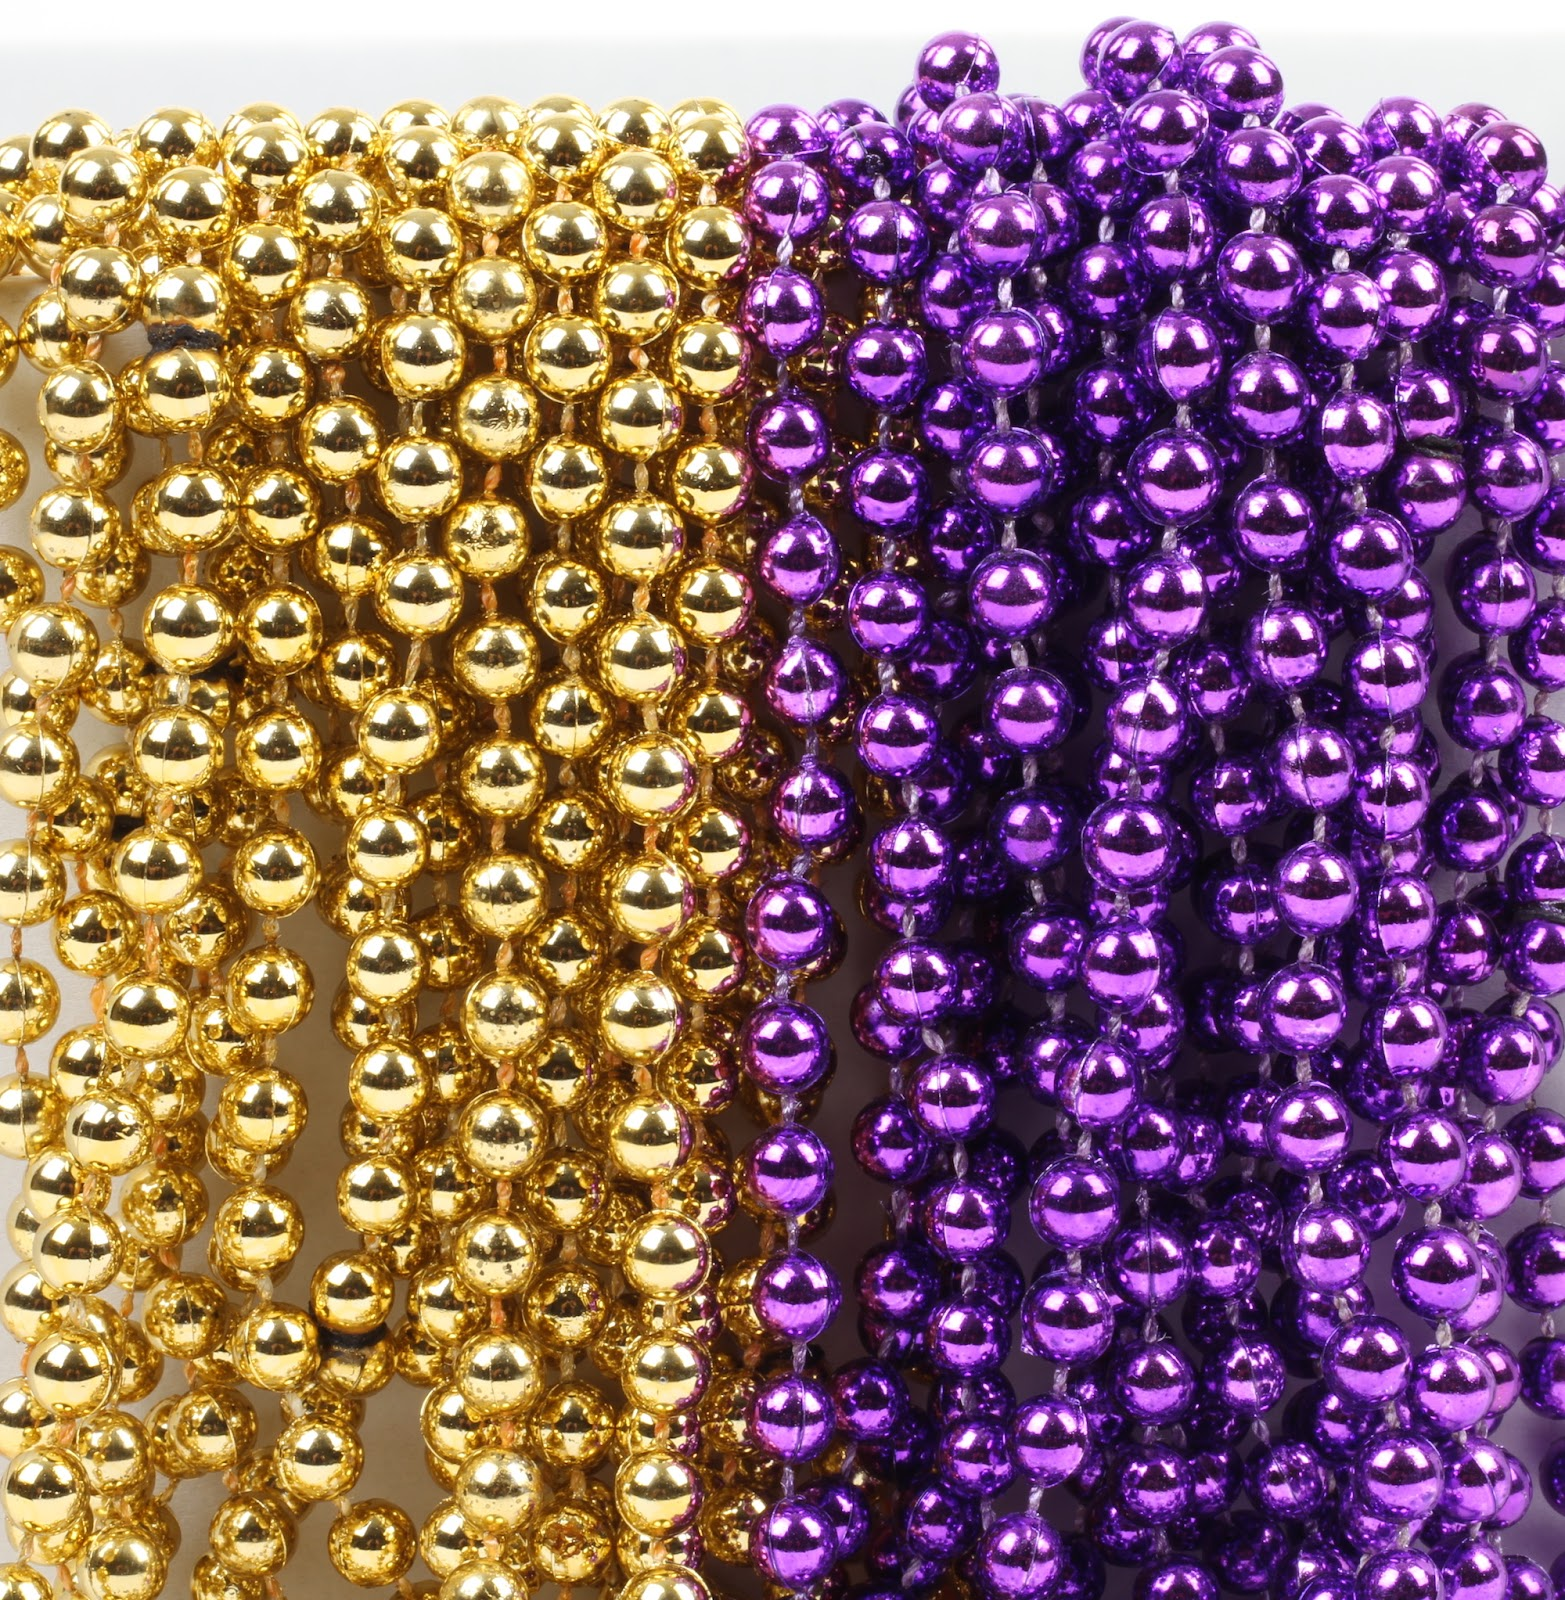 Mardi Gras Plastic Bead Necklaces Duo for Graduation Party Favors and Decorations, Purple and Gold, 24-Pack